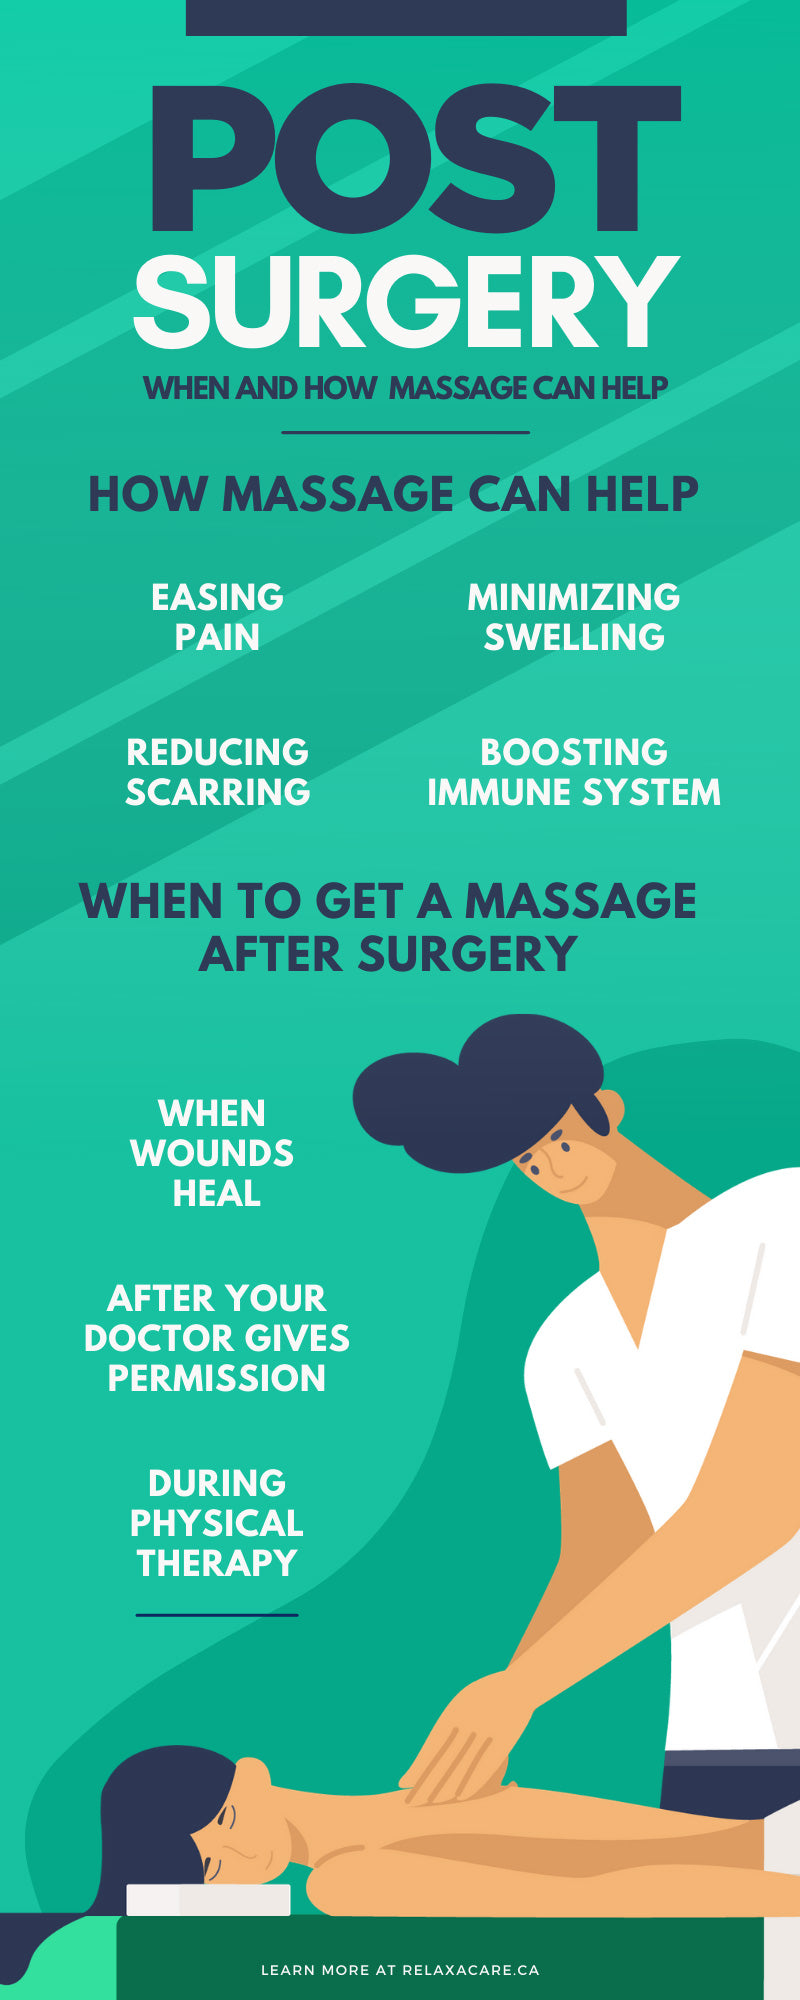 Post-Surgery: When and How Massage Can Help